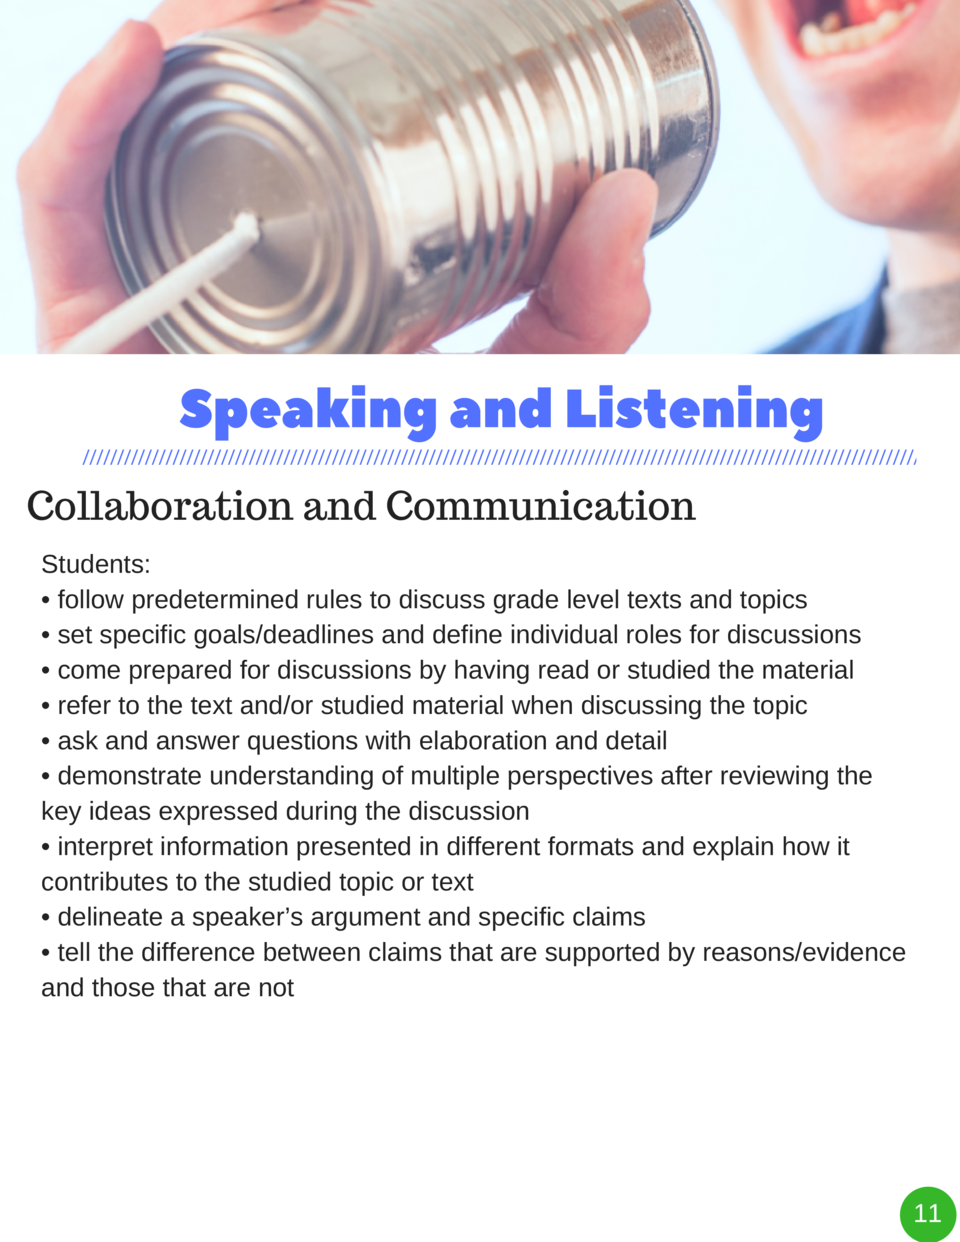 Speaking and Listening Collaboration and Communication Students      follow predetermined rules to discuss grade level tex...